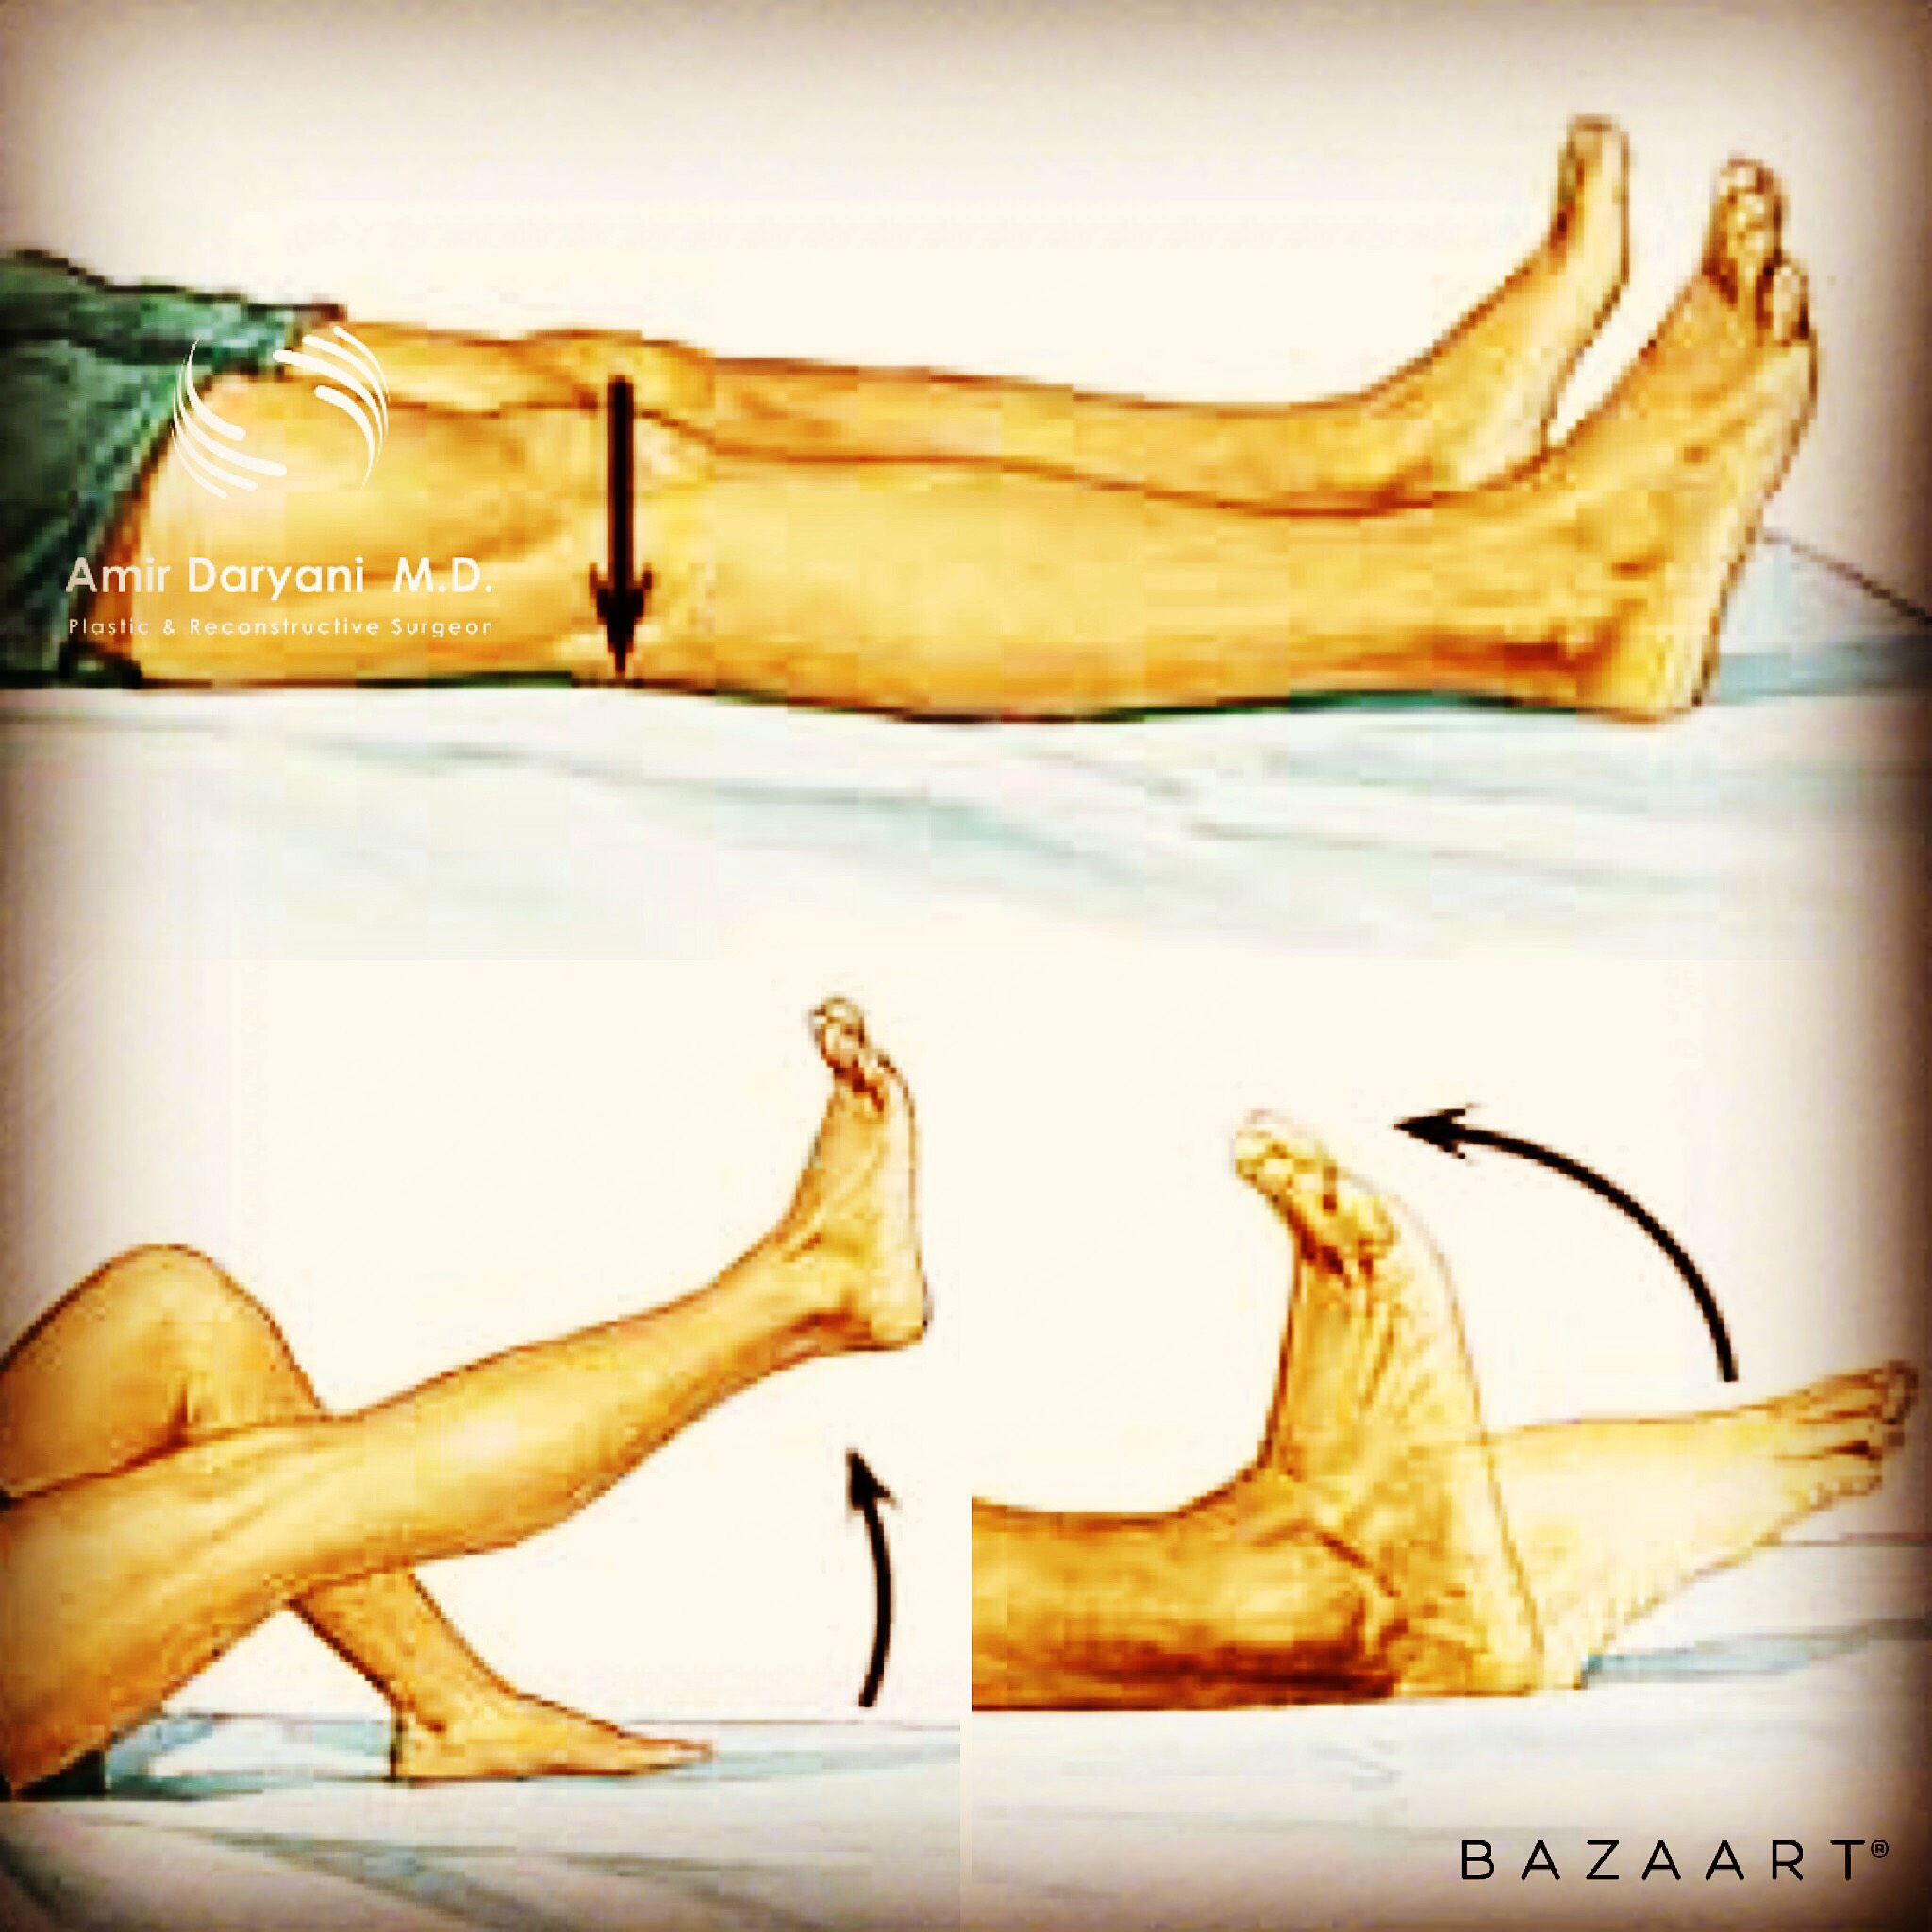 Foot exercise after abdominoplasty or liposuction